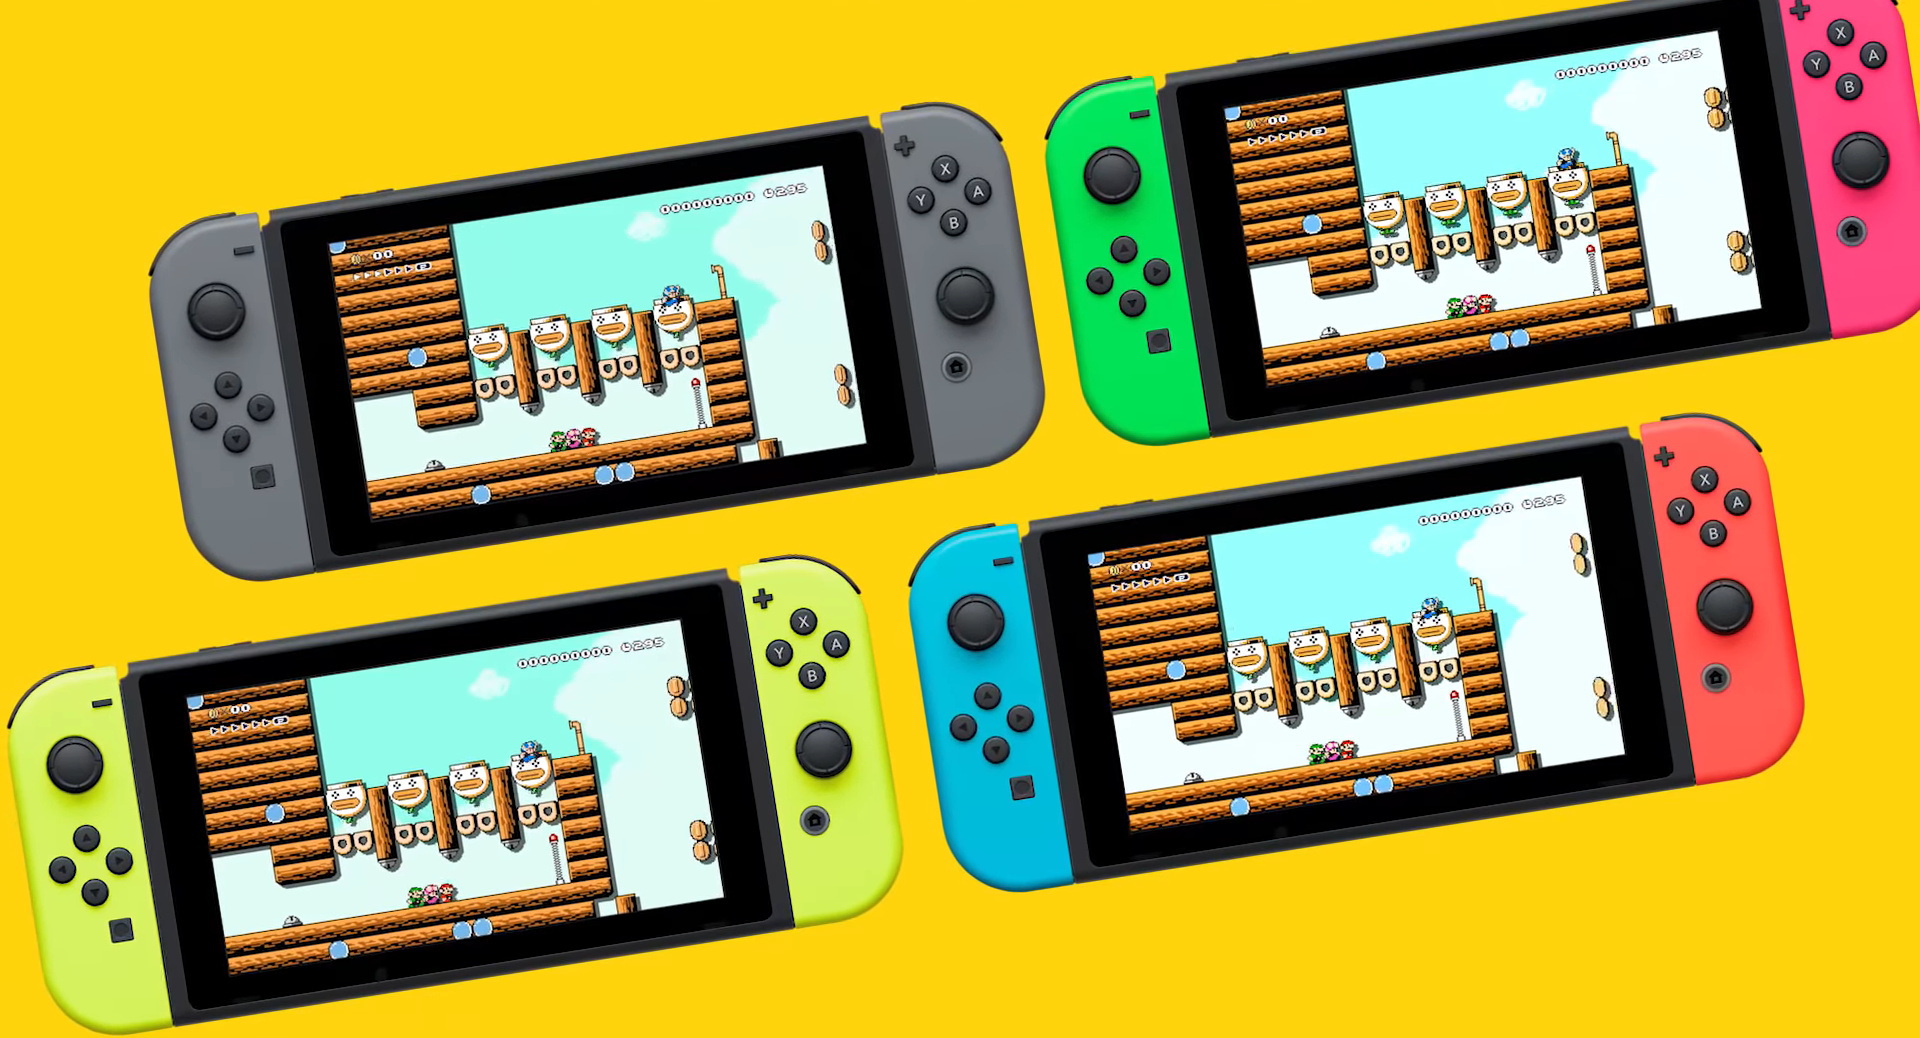 Build And Play Together In Super Mario Maker 2's Multiplayer